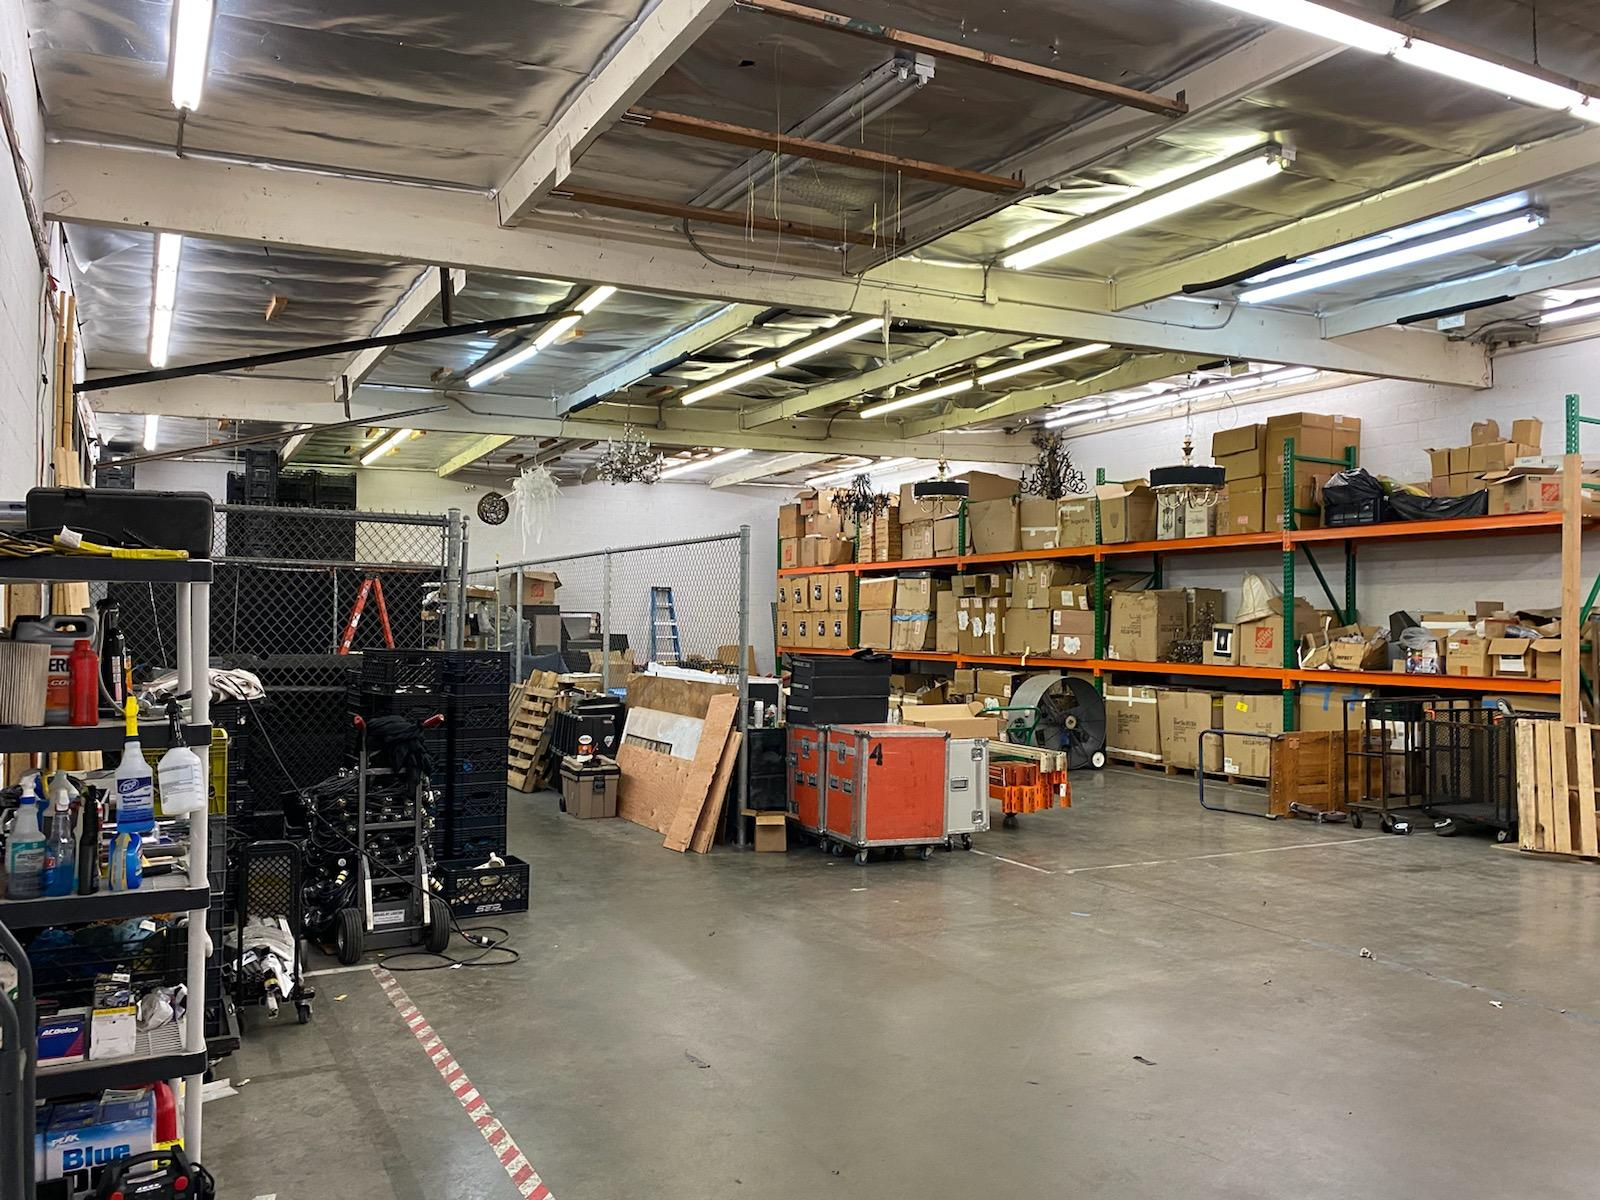 LAX adjacent industrial warehouse space available for flexible short-term lease.